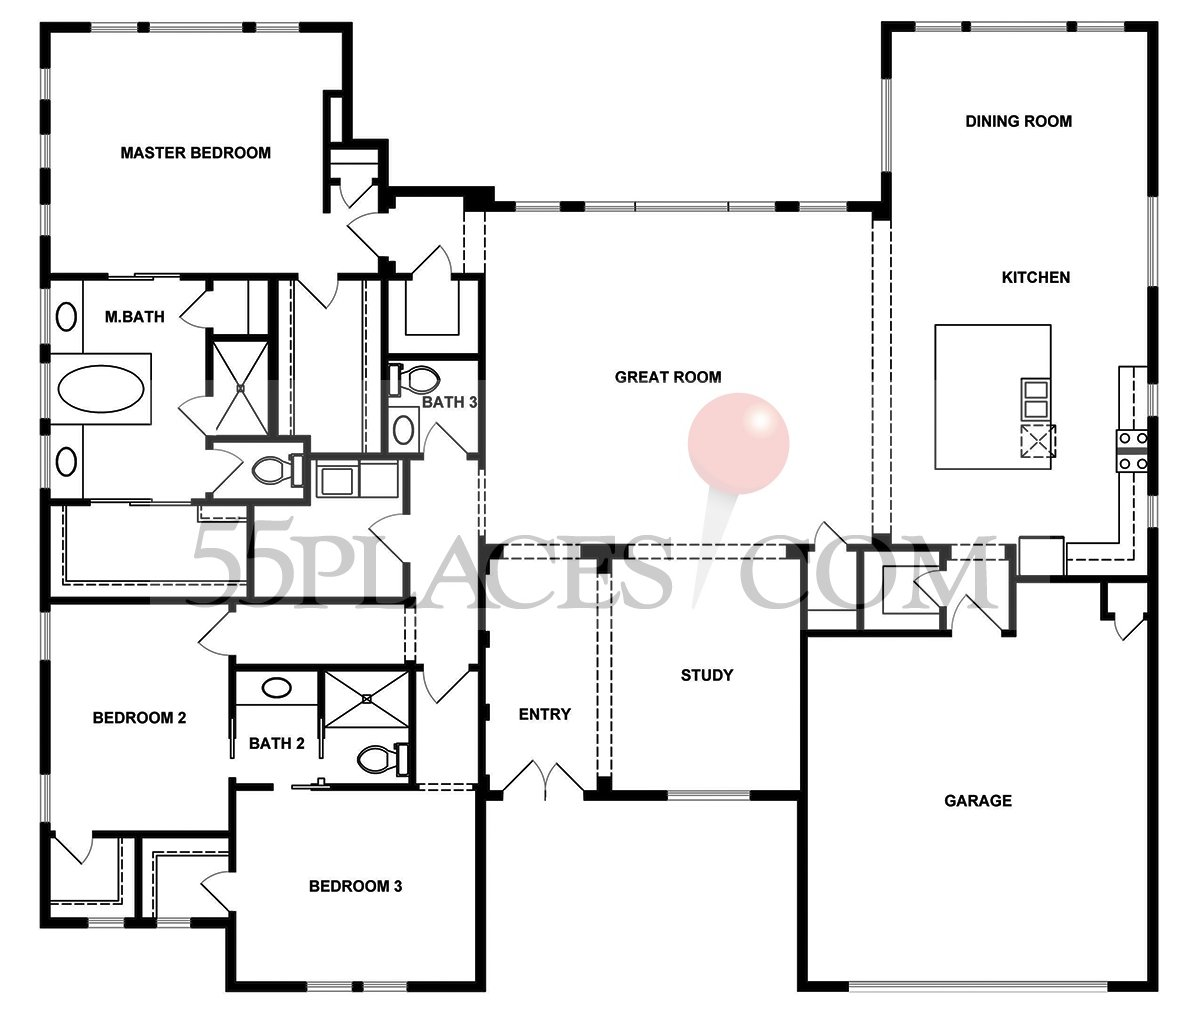 Bryn Mawr Floorplan 3079 Sq Ft Kissing Tree – Kissing Tree Site Plan